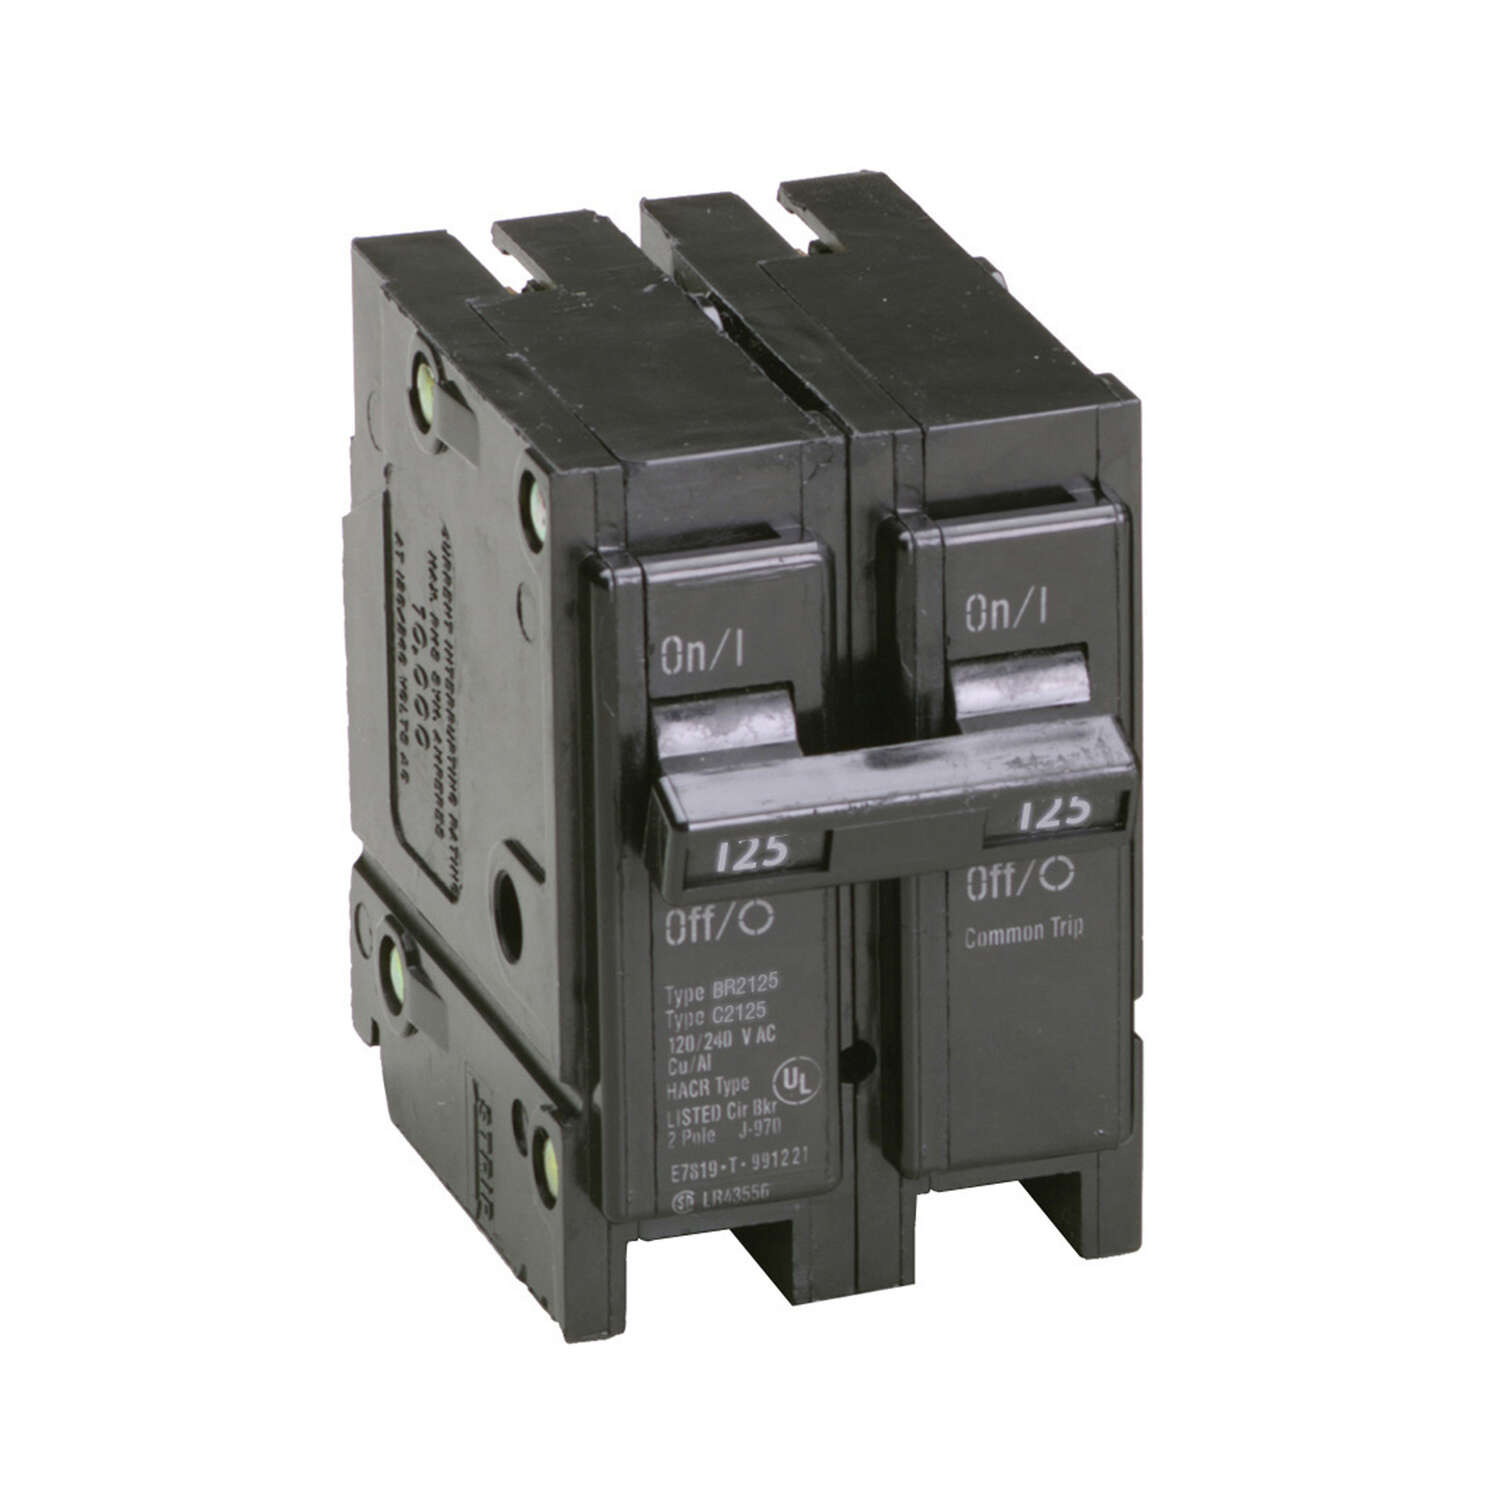 Eaton  Cutler-Hammer  125 amps Plug In  2-Pole  Circuit Breaker